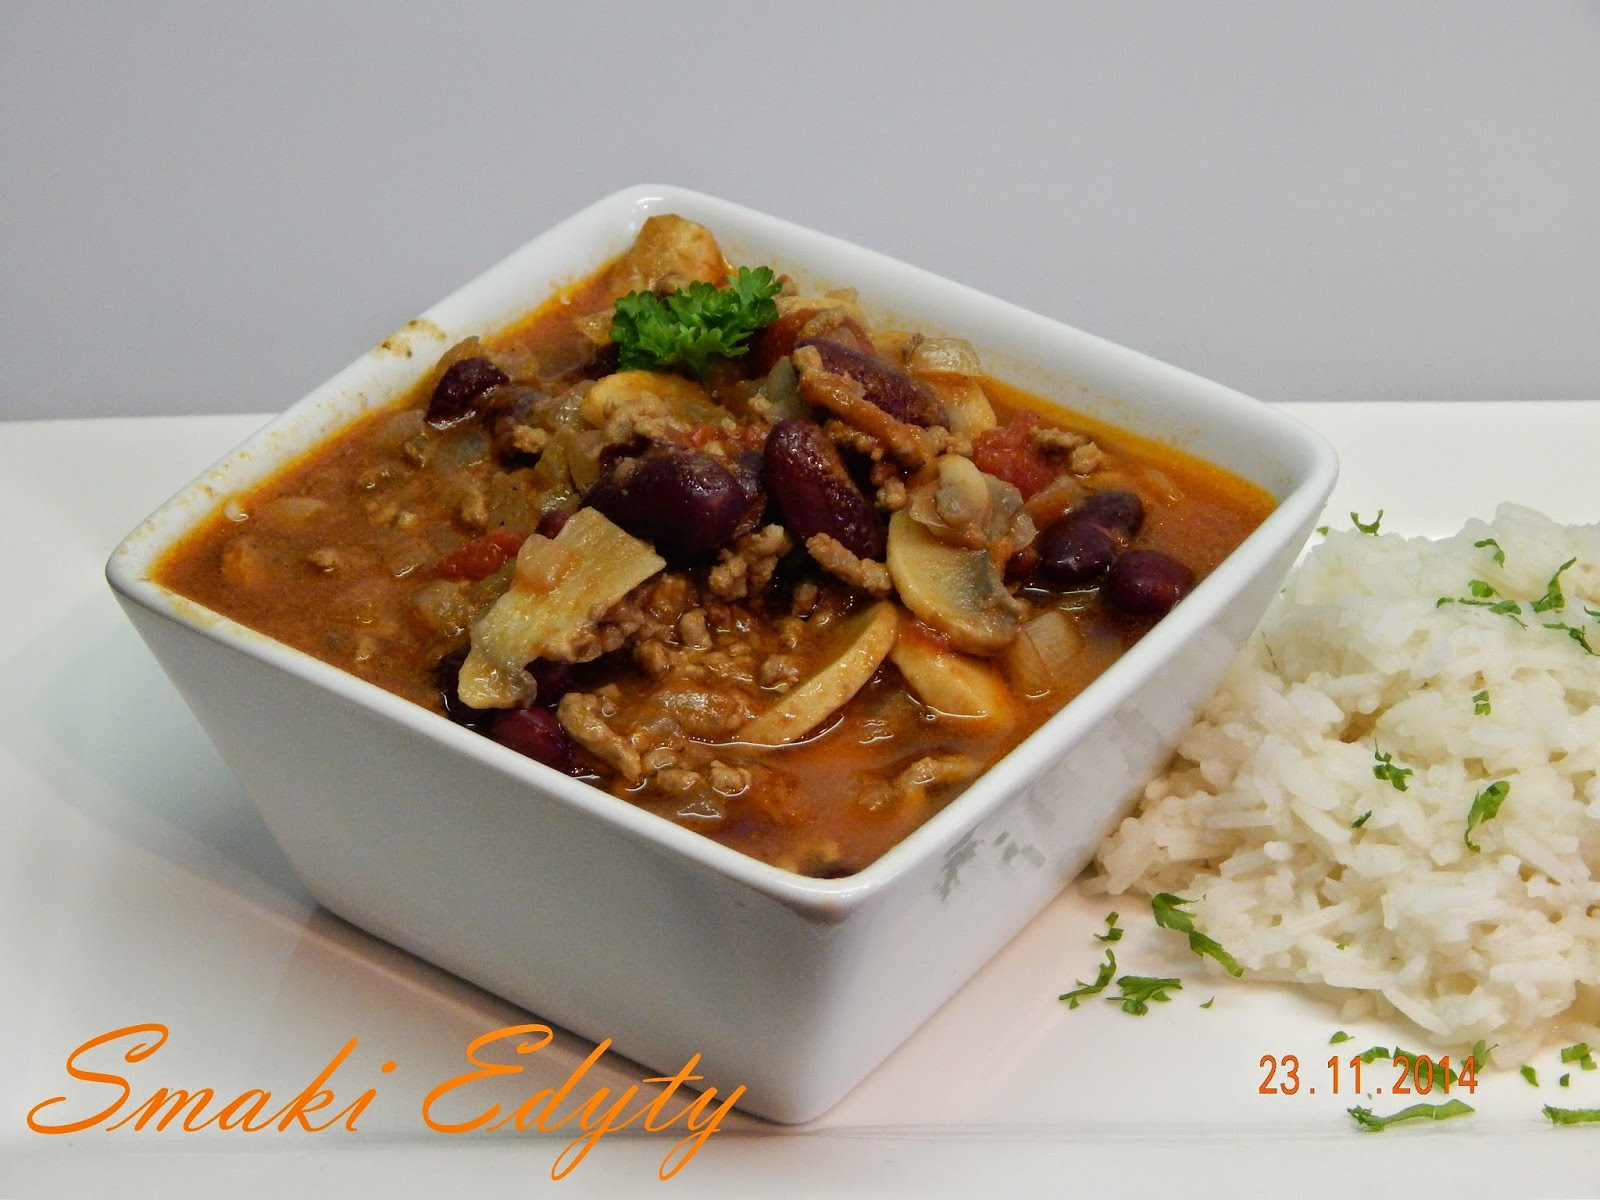 Chilli con carne z pieczarkami- chilli con carne with mushrooms